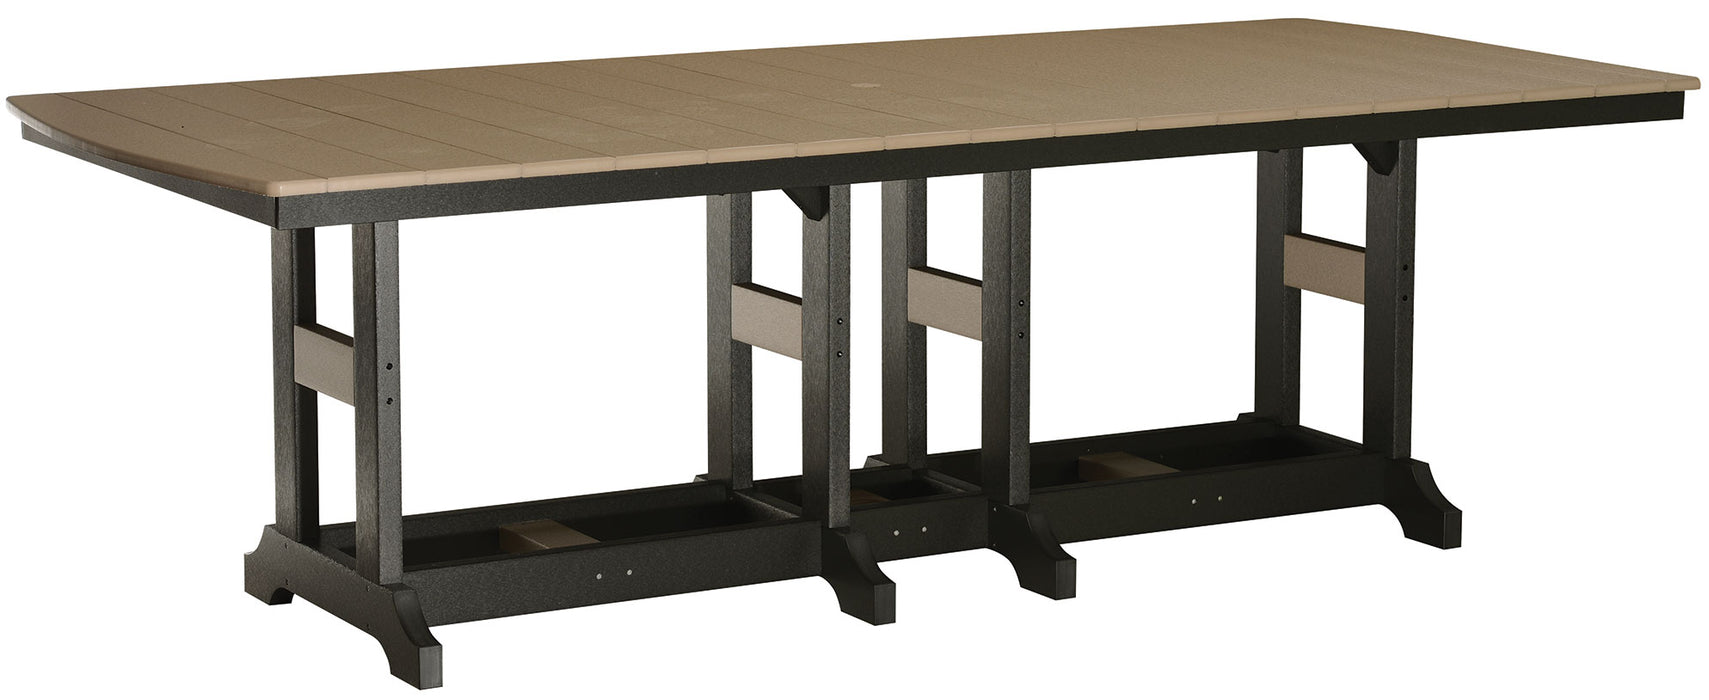 "Berlin Gardens Garden Classic 44"" x 96"" Rectangular Table - Counter Height"